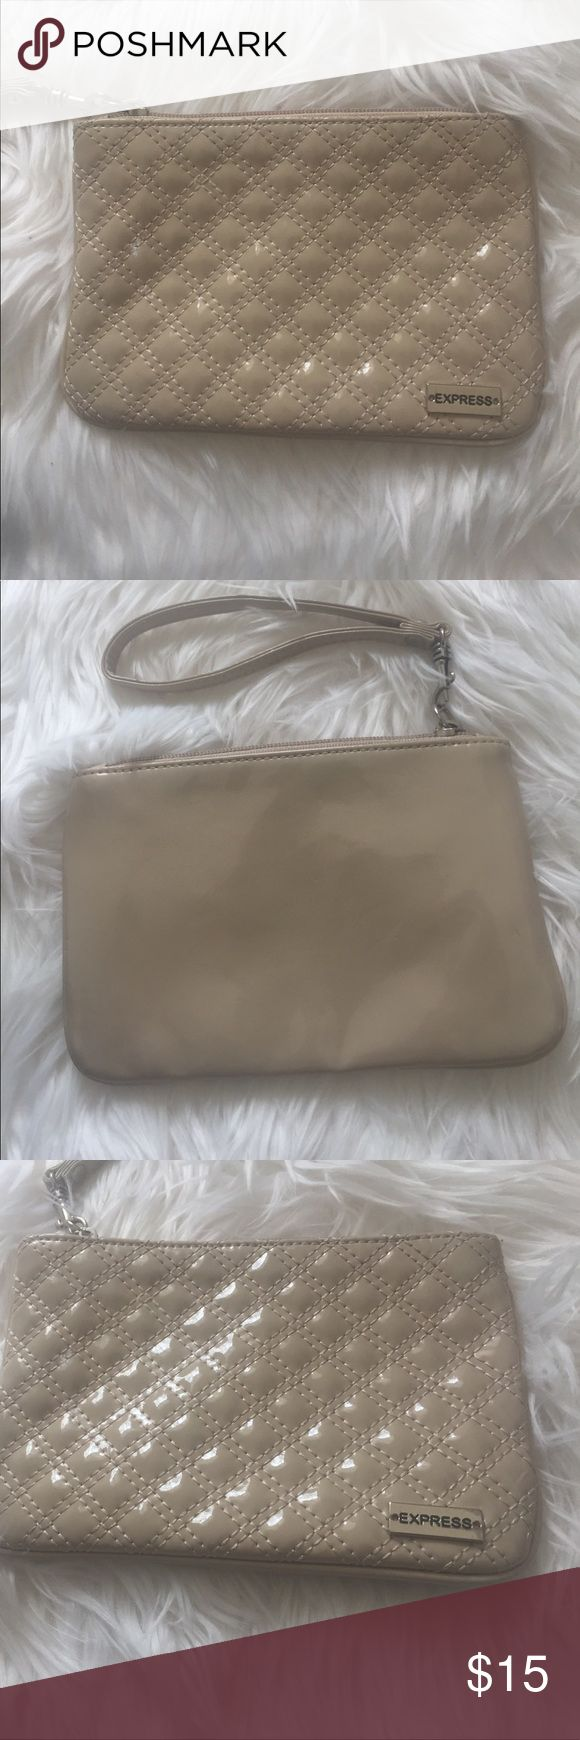 Women's wristlet Only used a few times. Express Bags Clutches & Wristlets